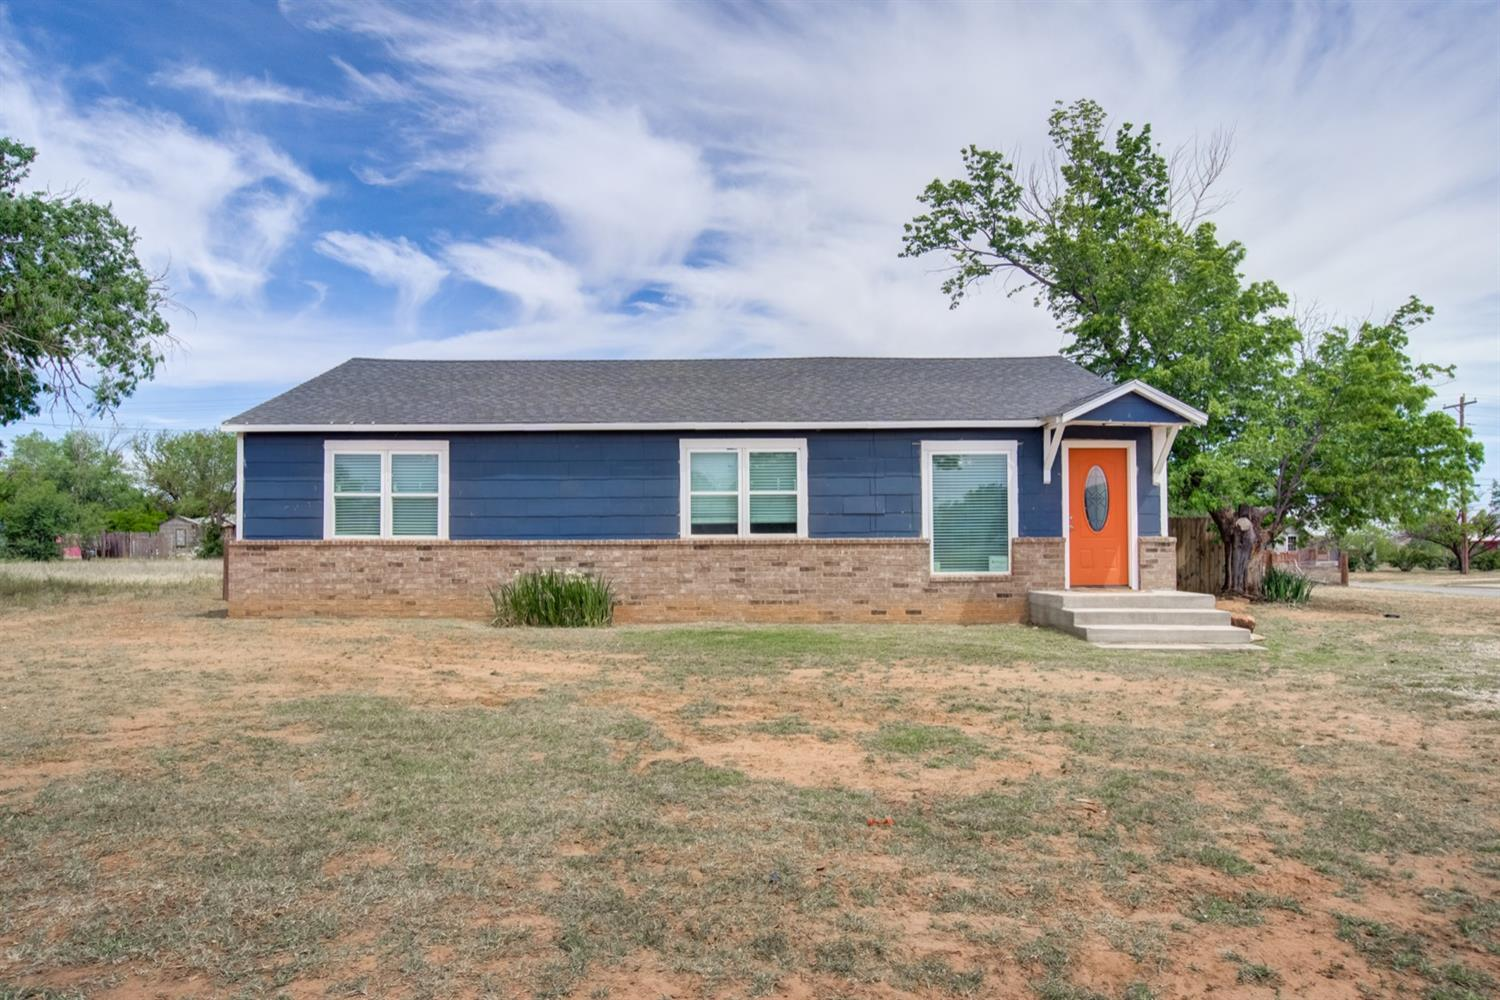 Across the street from Sundown school! Brand new metal fence and carport on 1/2 acre lot! New Central Heating and Air! New windows, vinyl plank flooring, paint and carpet. Yard has been leveled, and a $3,500 allowance being given by the seller for landscapig will give this home even more beautiful curb appeal!